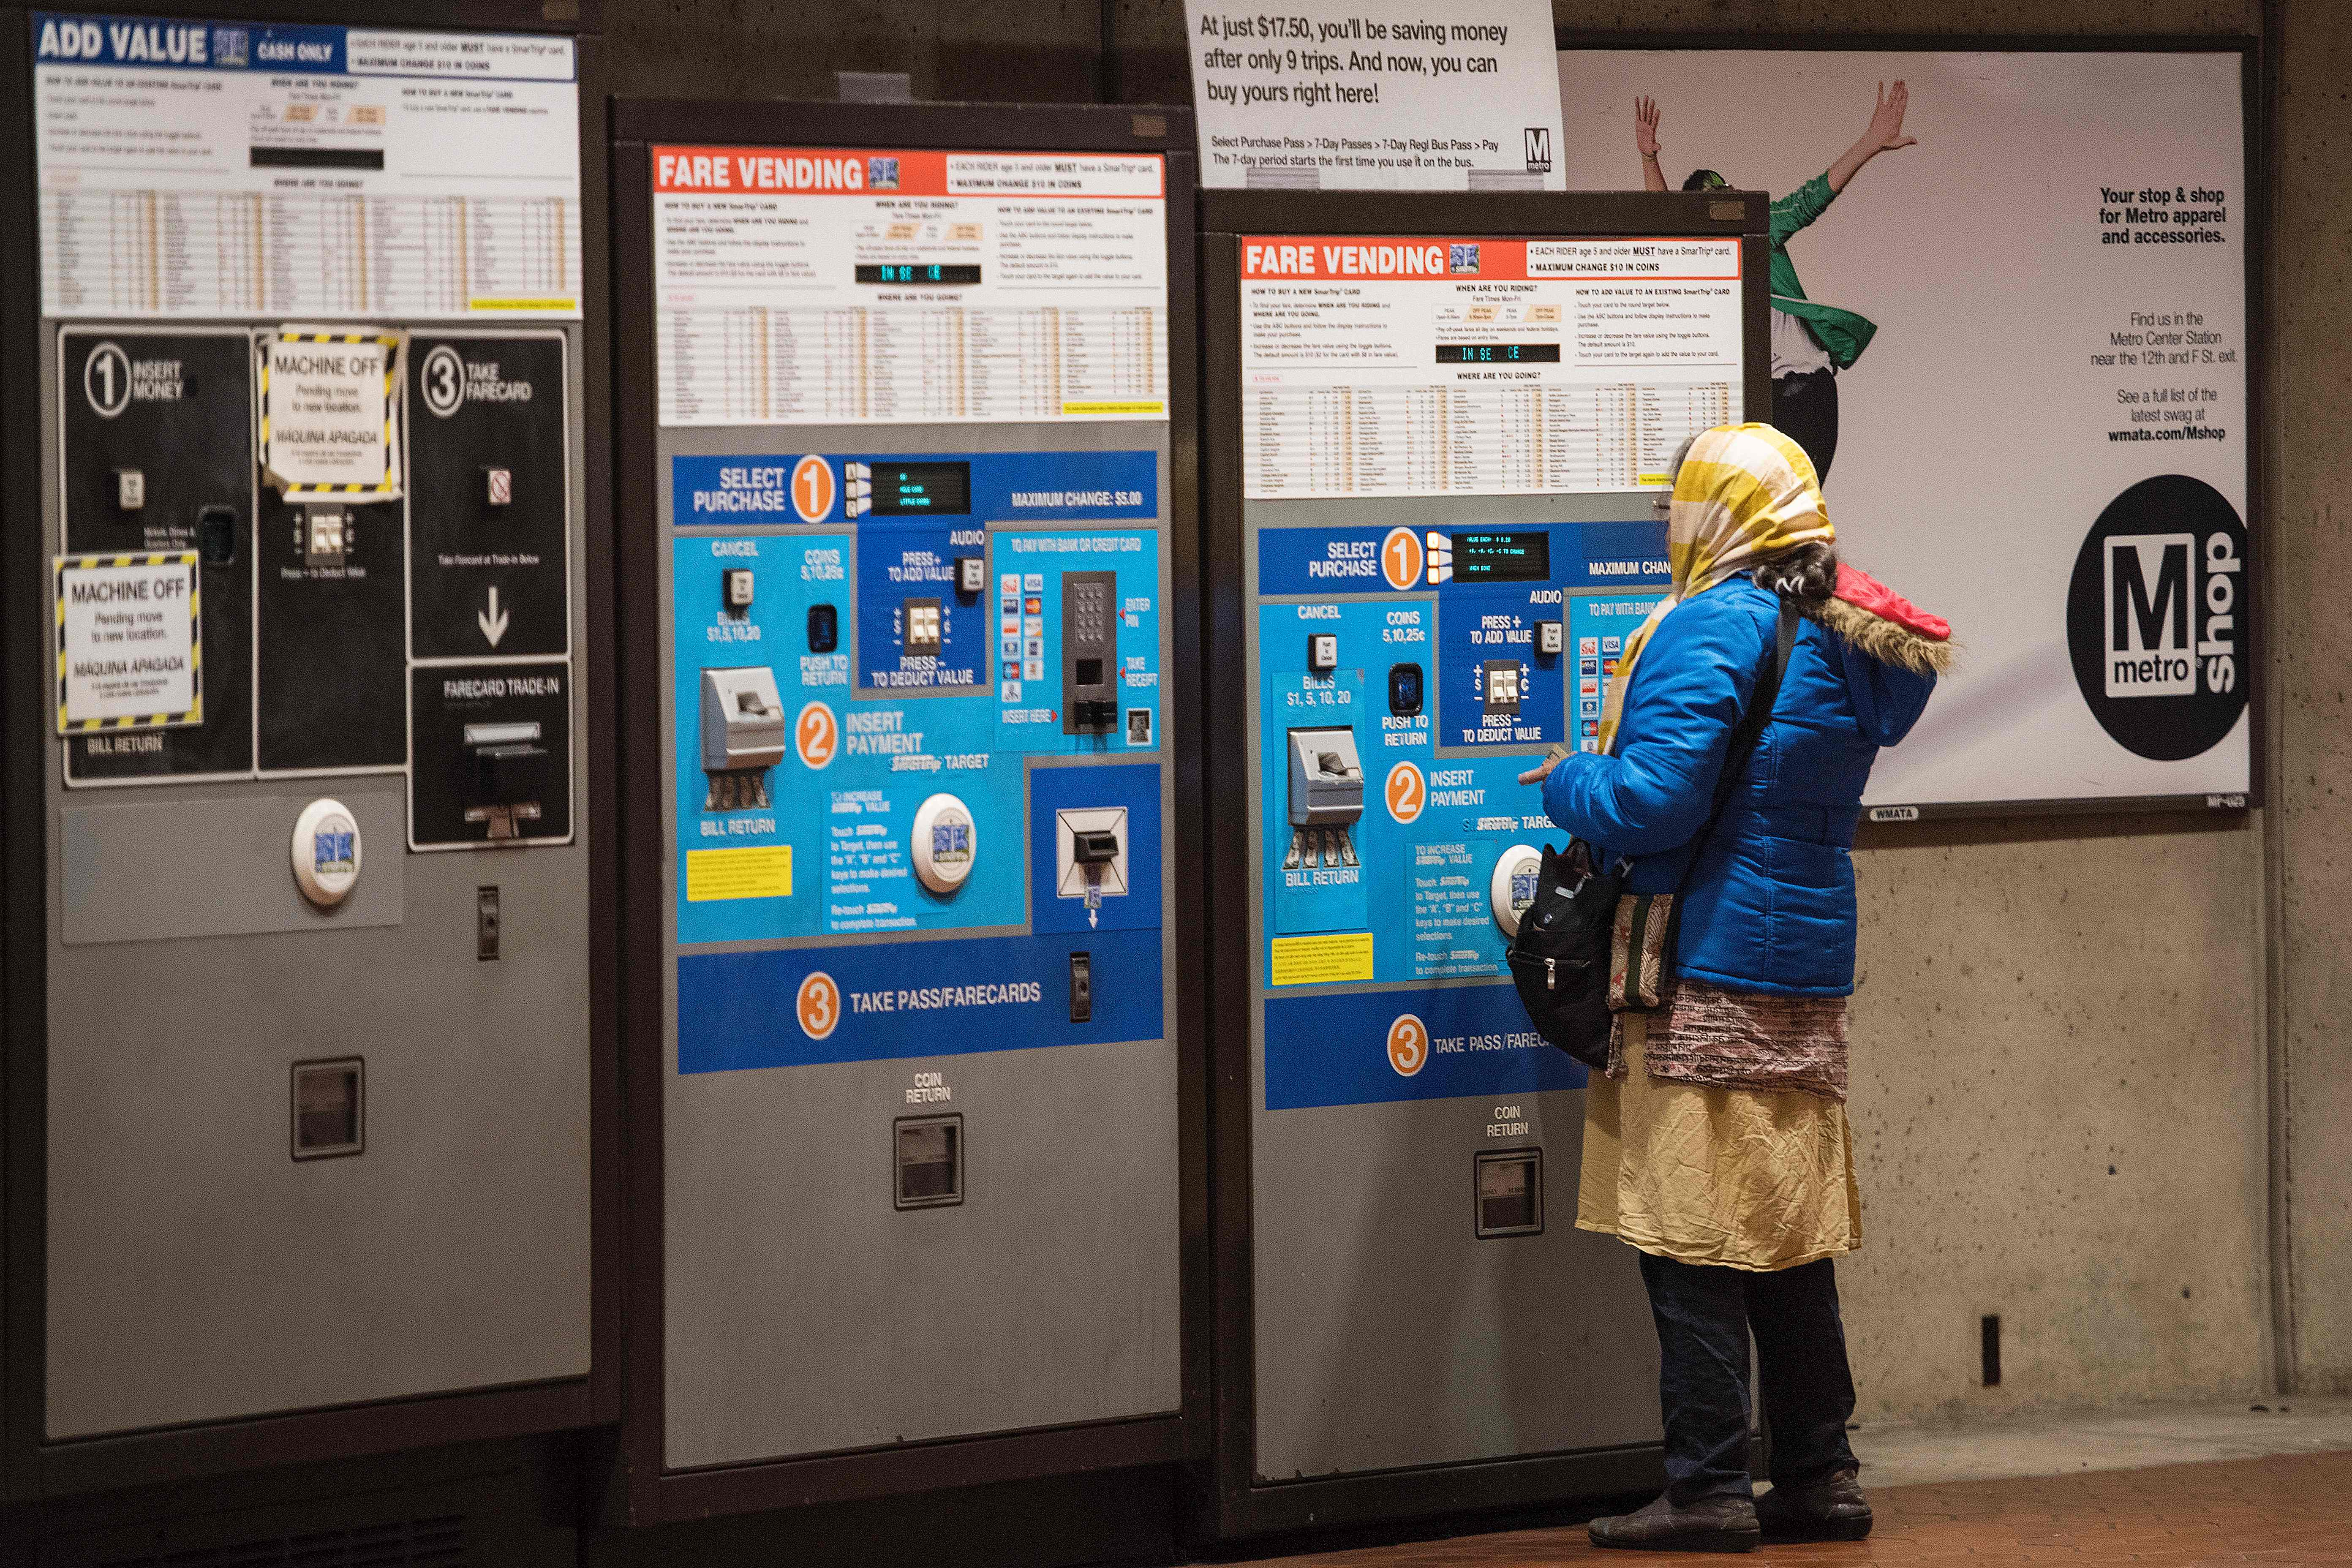 A Metrorail commuter uses a fare machine at a station in Washington, DC, on October 24, 2018. (Photo: JIM WATSON/AFP/Getty Images)